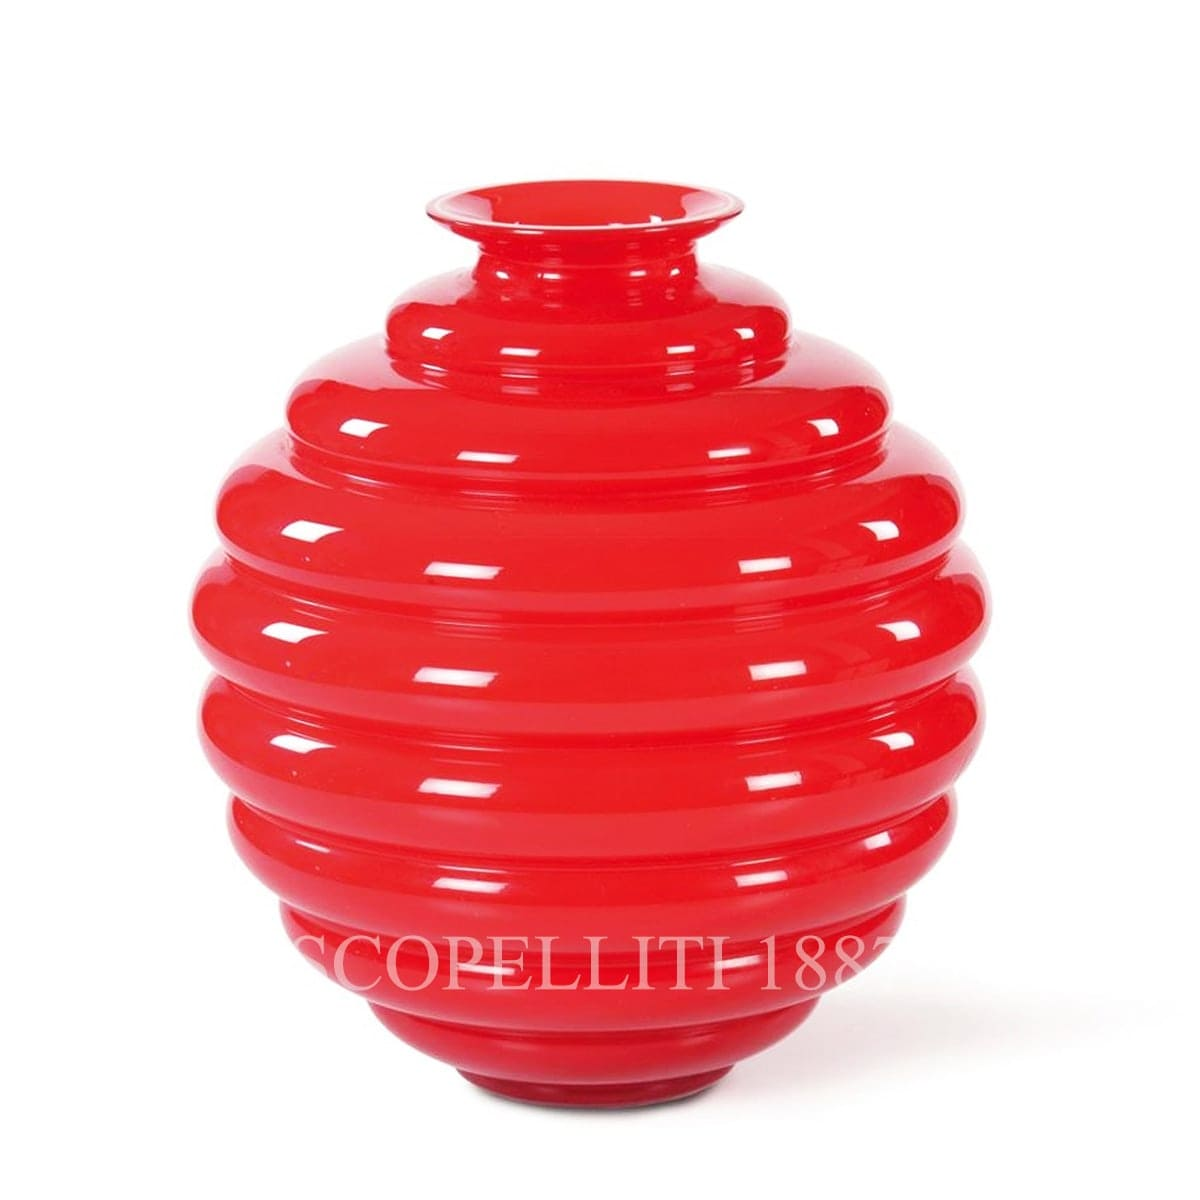 venini italian design deco vase large red